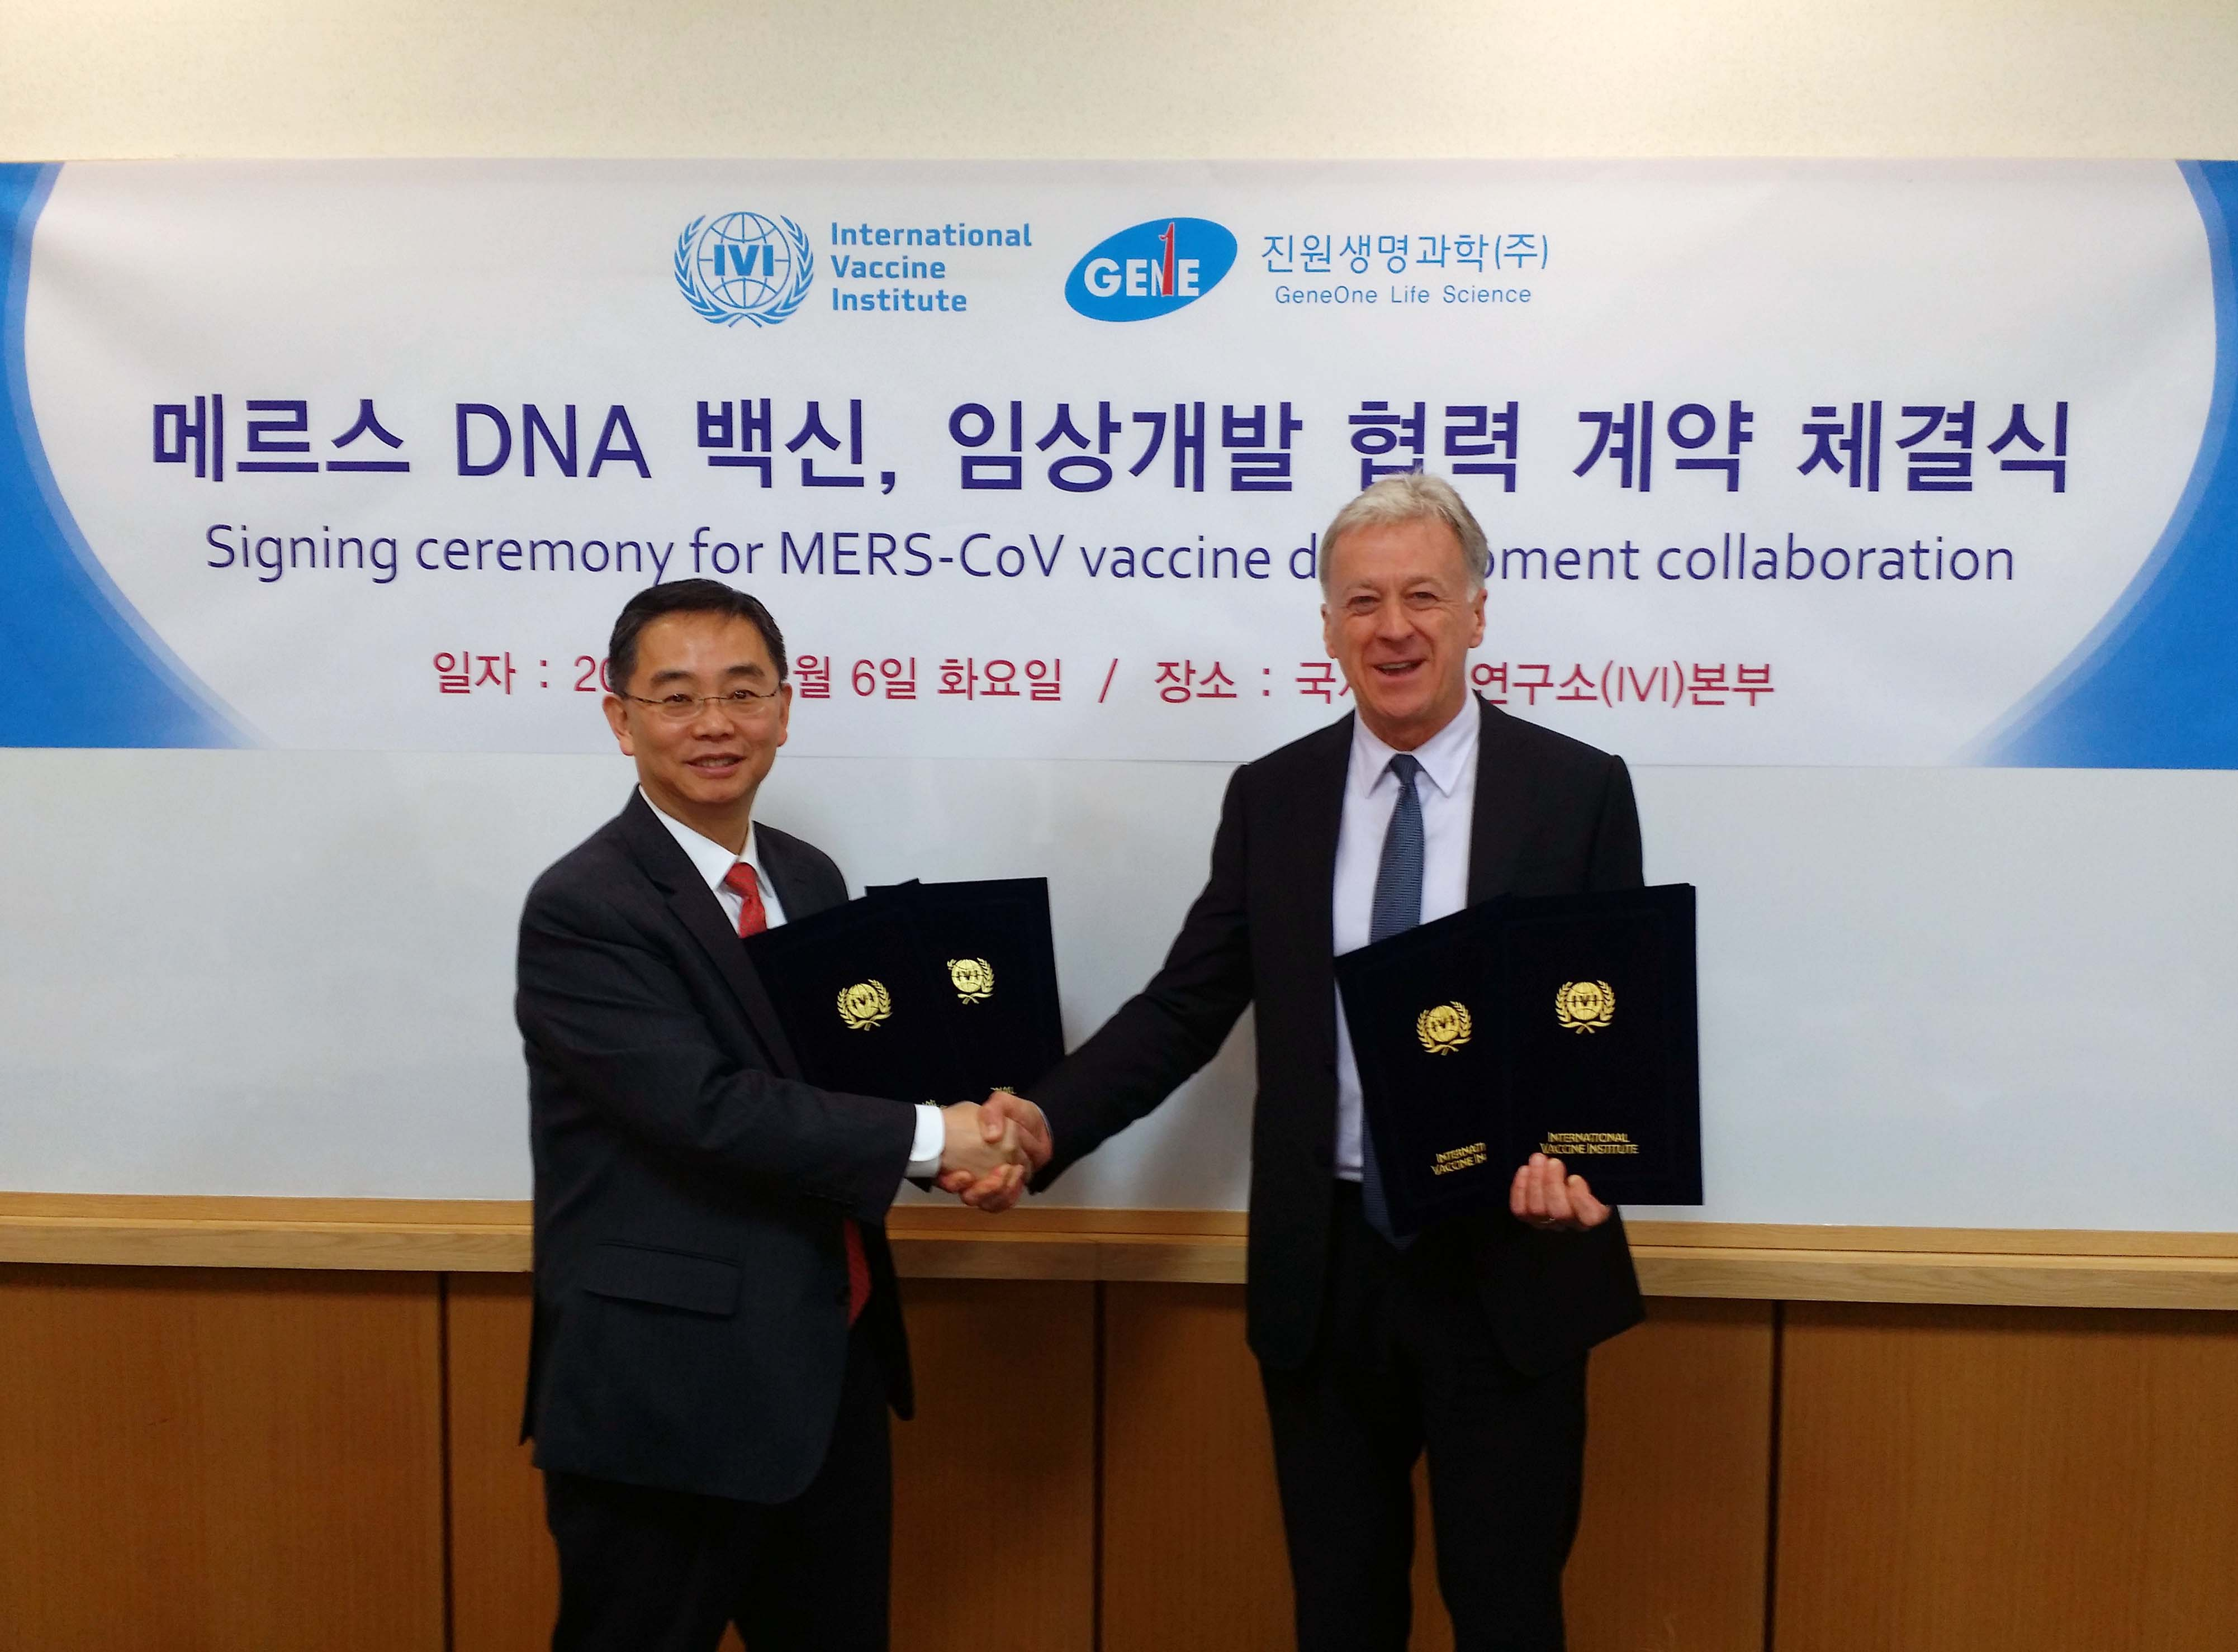 GeneOne and IVI Collaborate on MERS-CoV vaccine